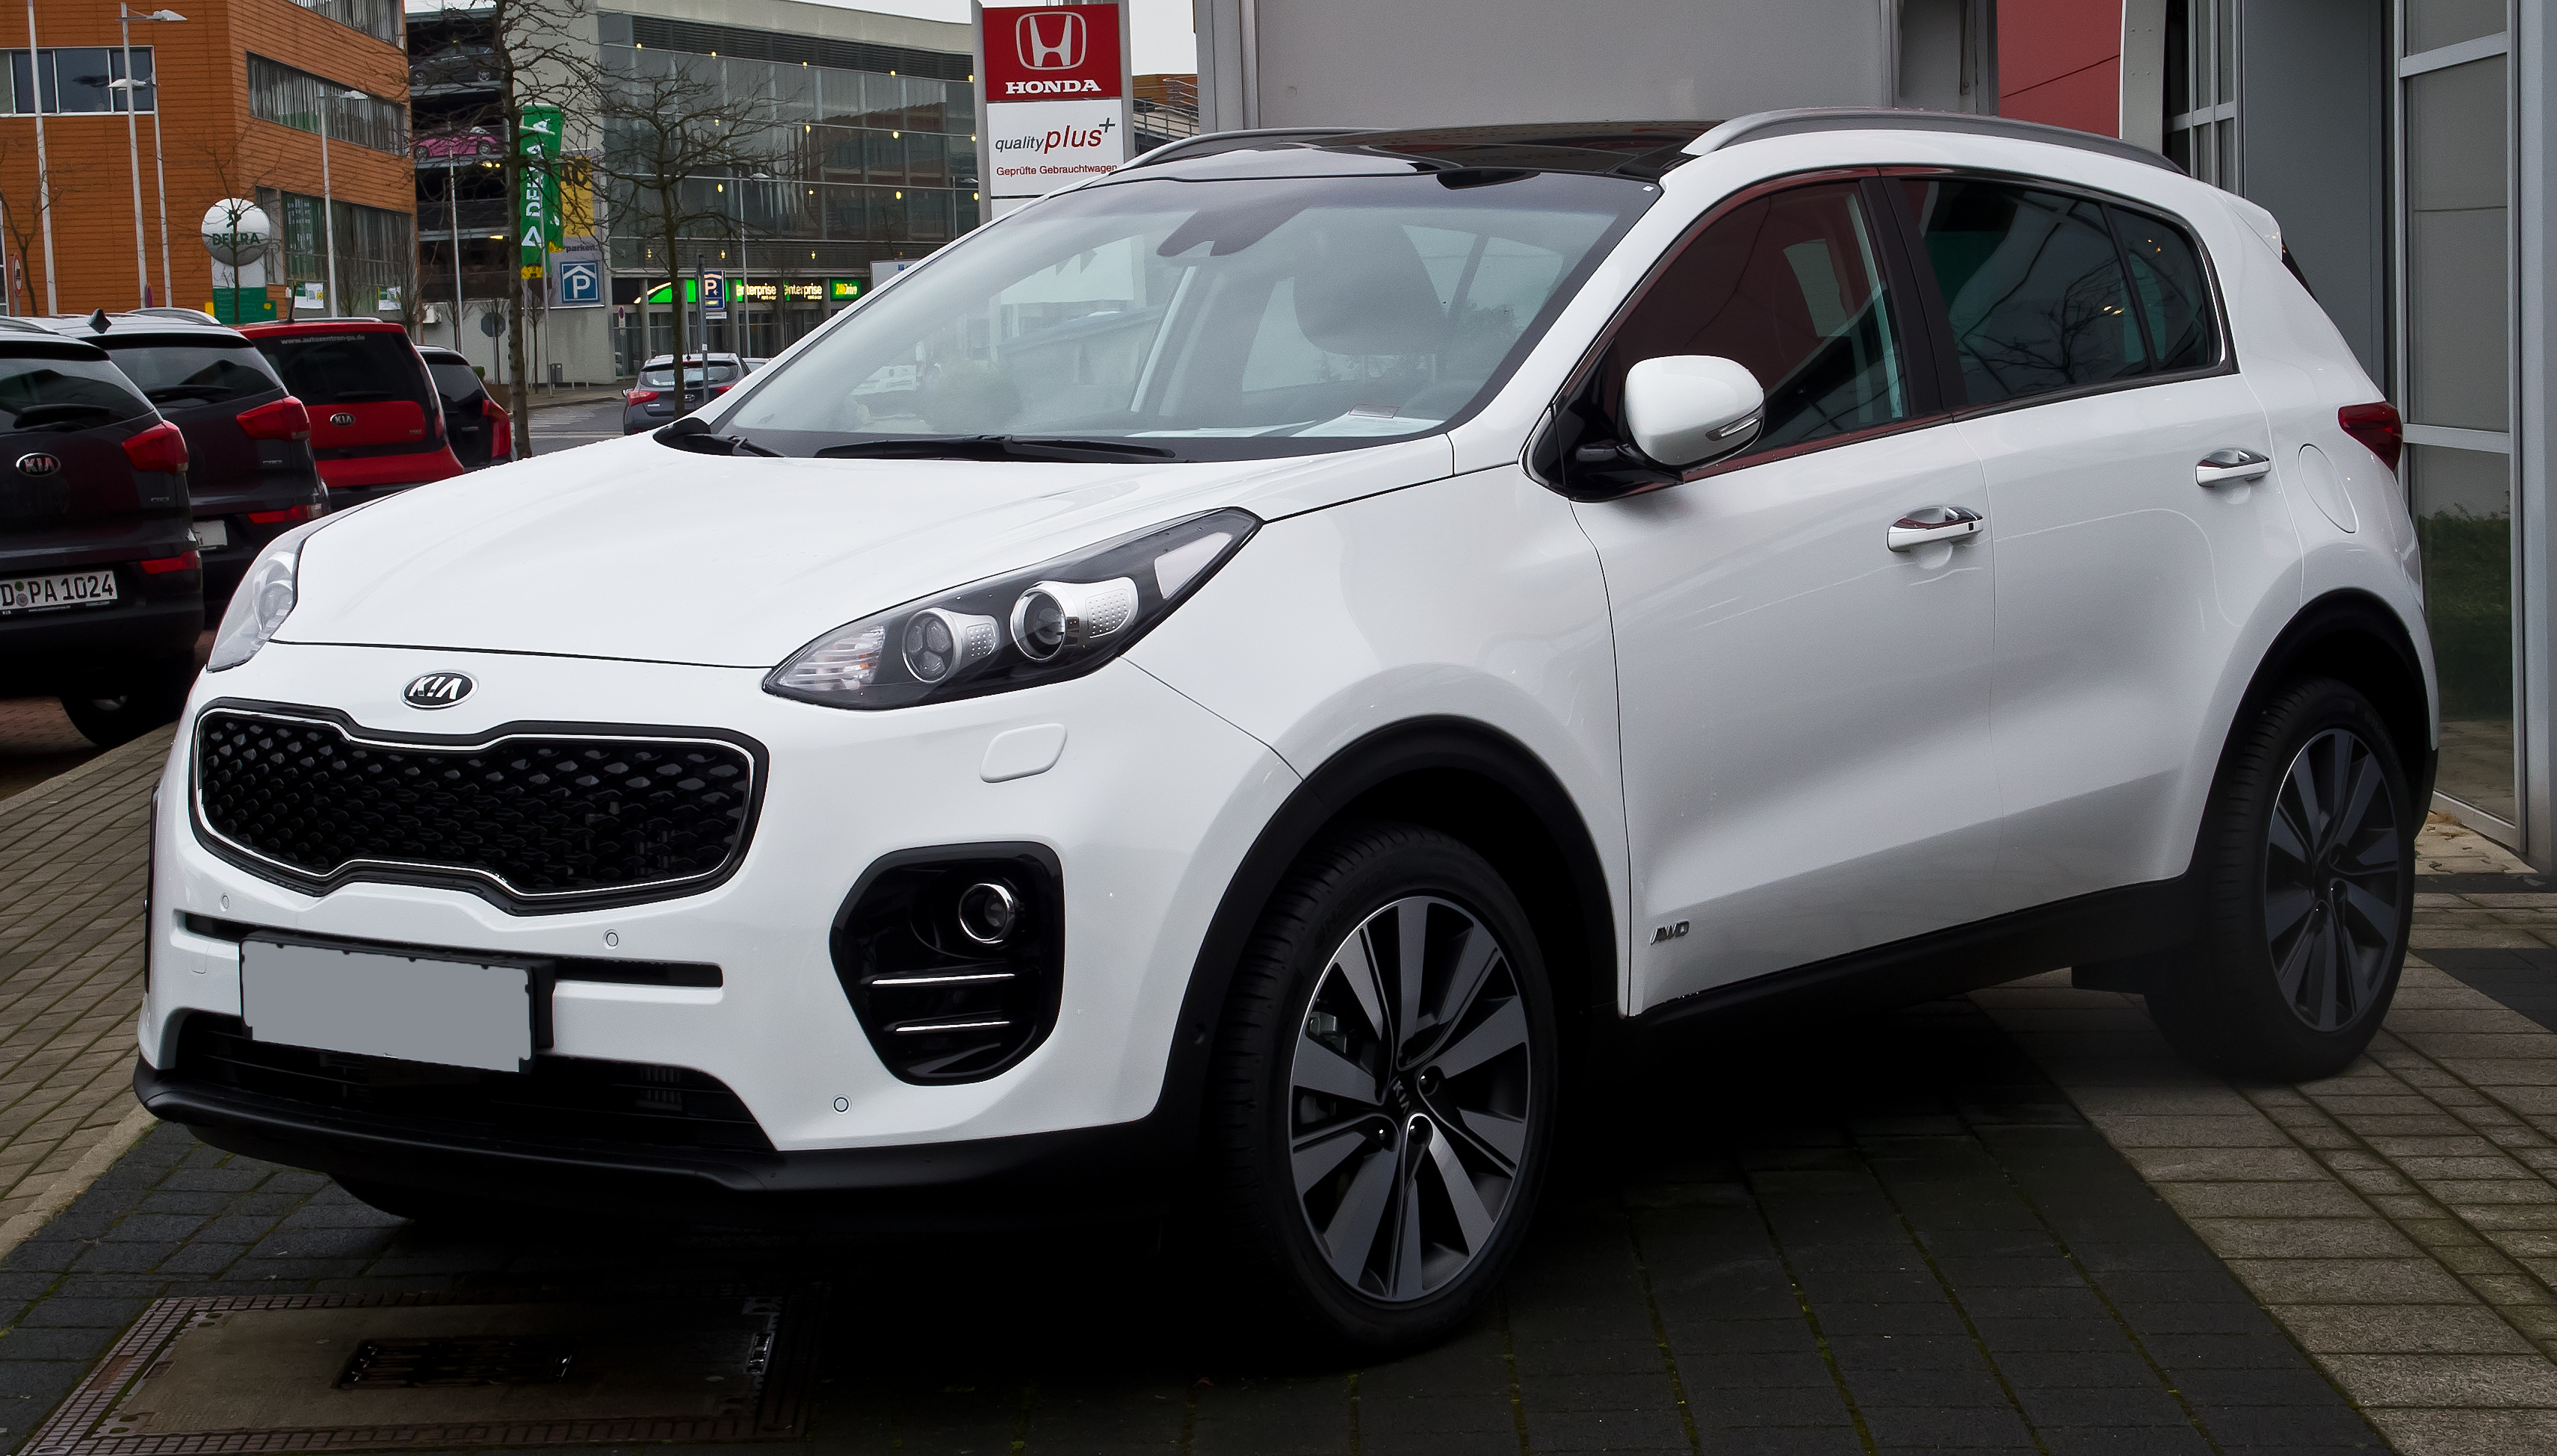 datei kia sportage 2 0 crdi awd platinum edition iv frontansicht 21 februar 2016. Black Bedroom Furniture Sets. Home Design Ideas